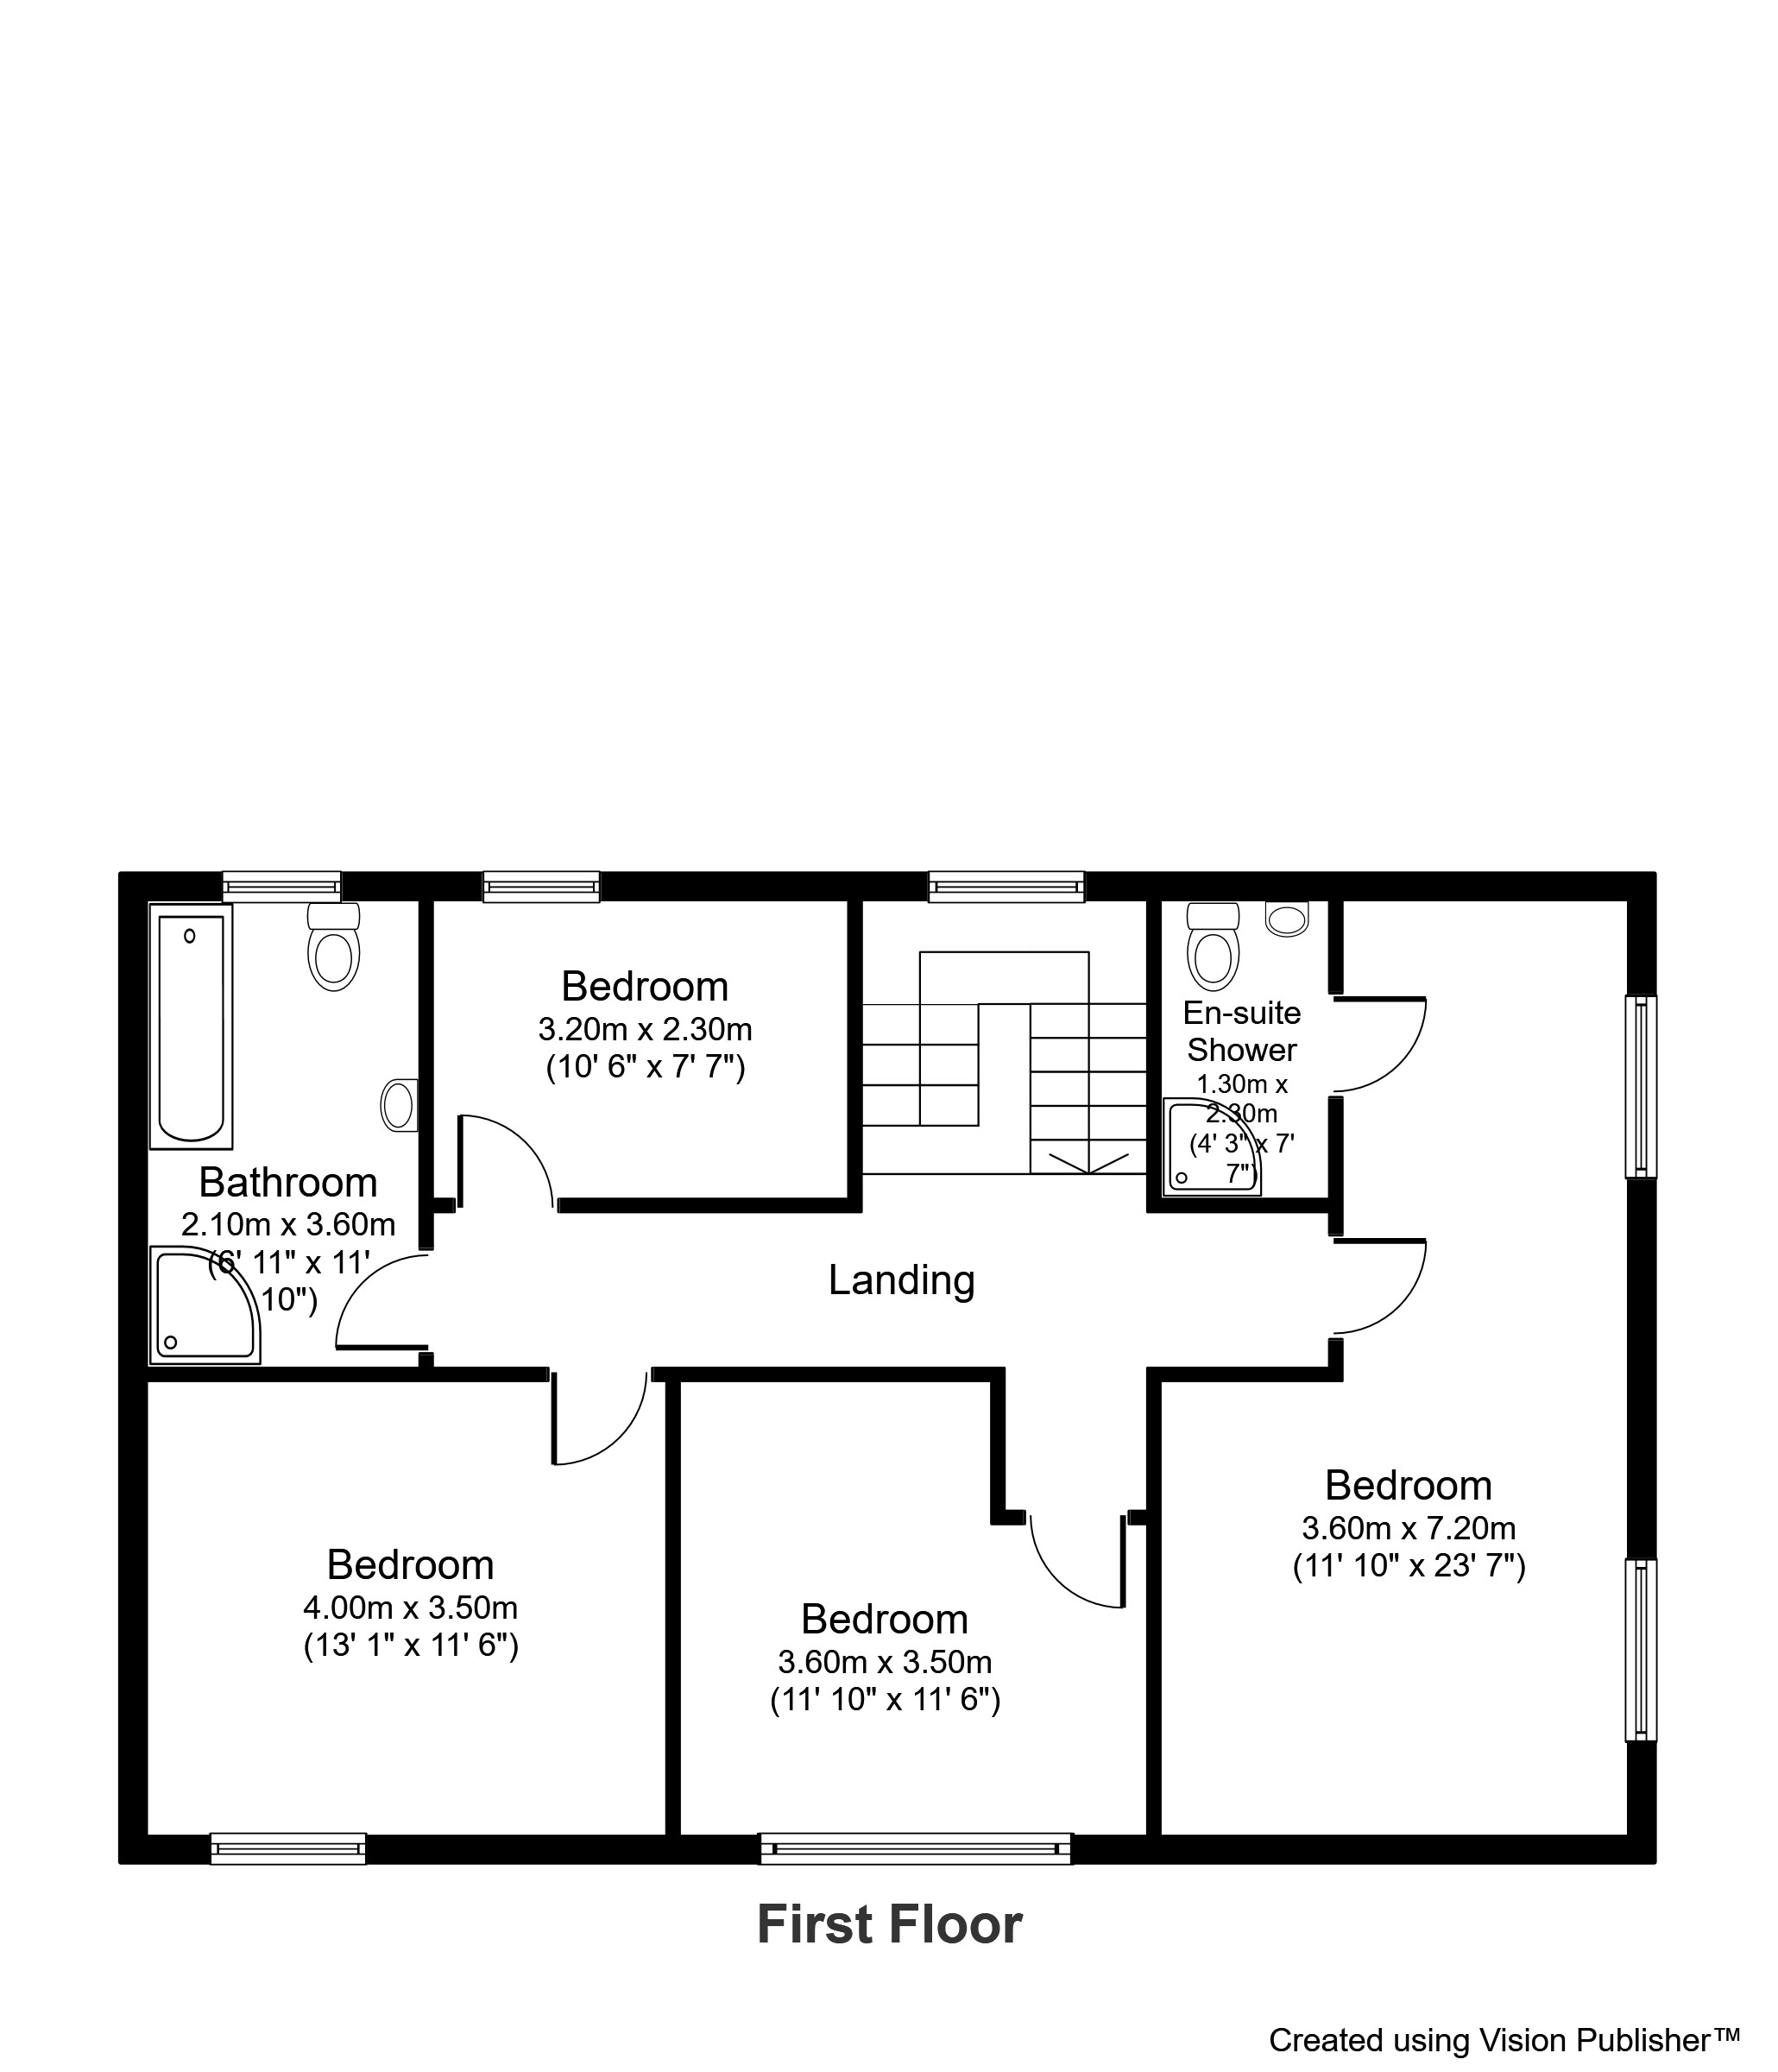 7 walsh fold Floor Plans (Auto Sized) (5)